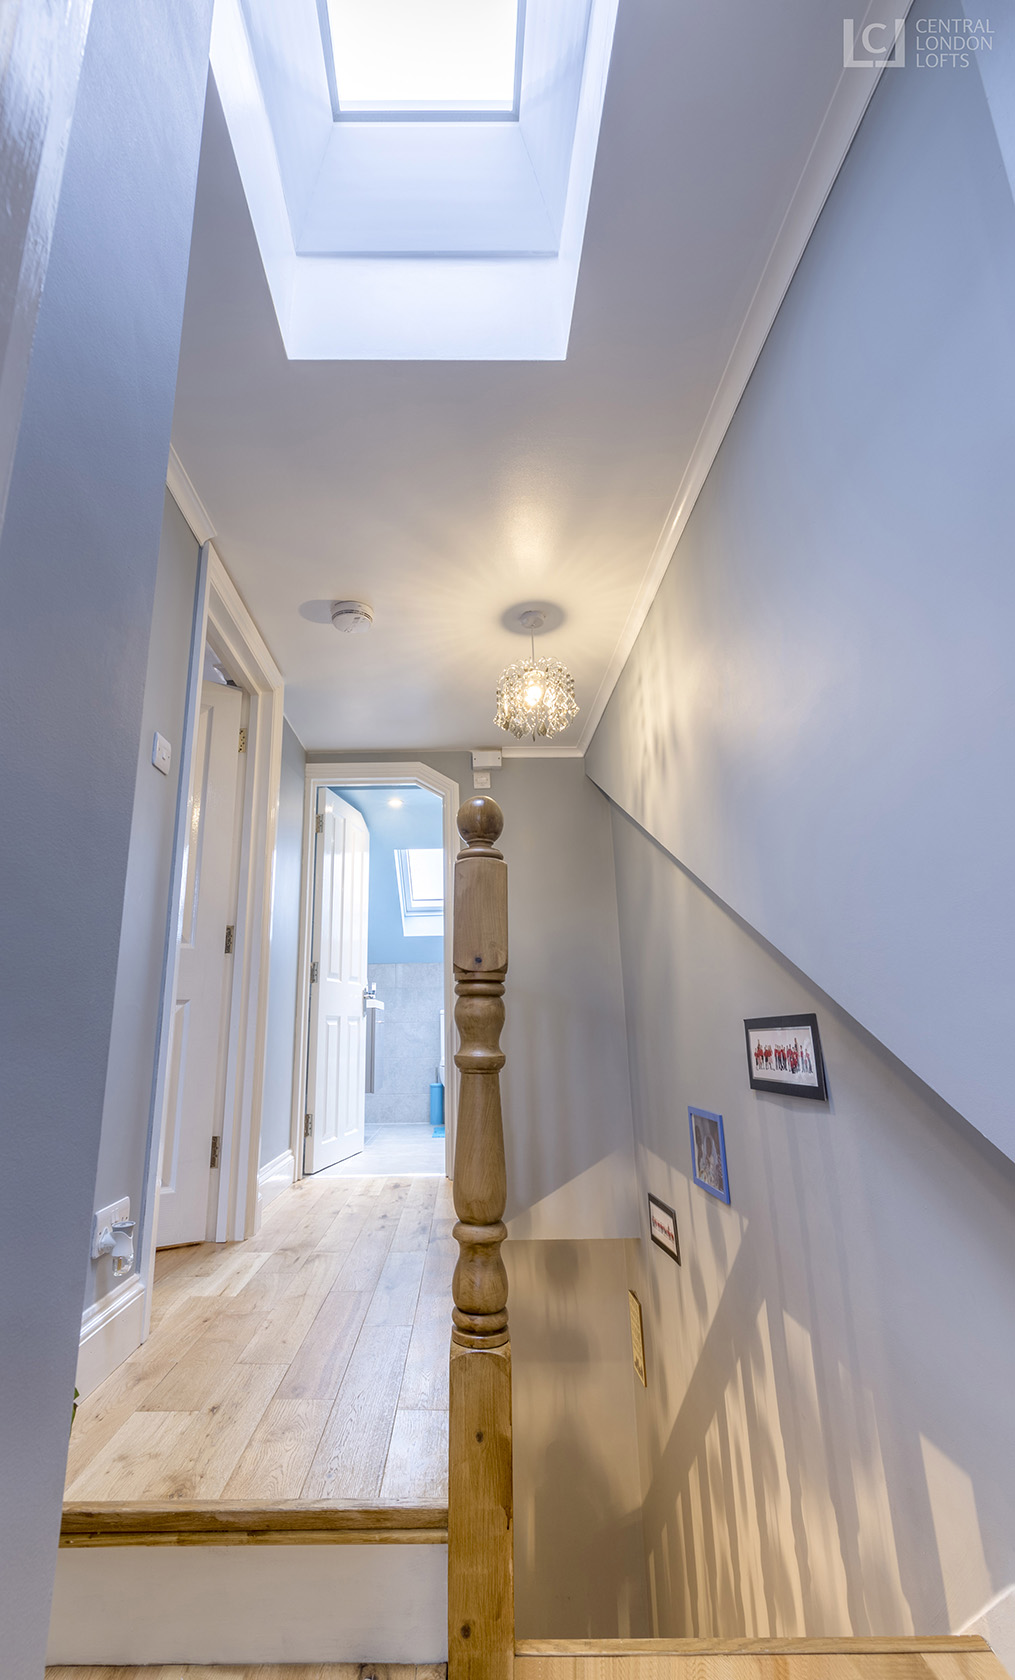 4 SOMERVILLE ROAD Loft Conversion 4